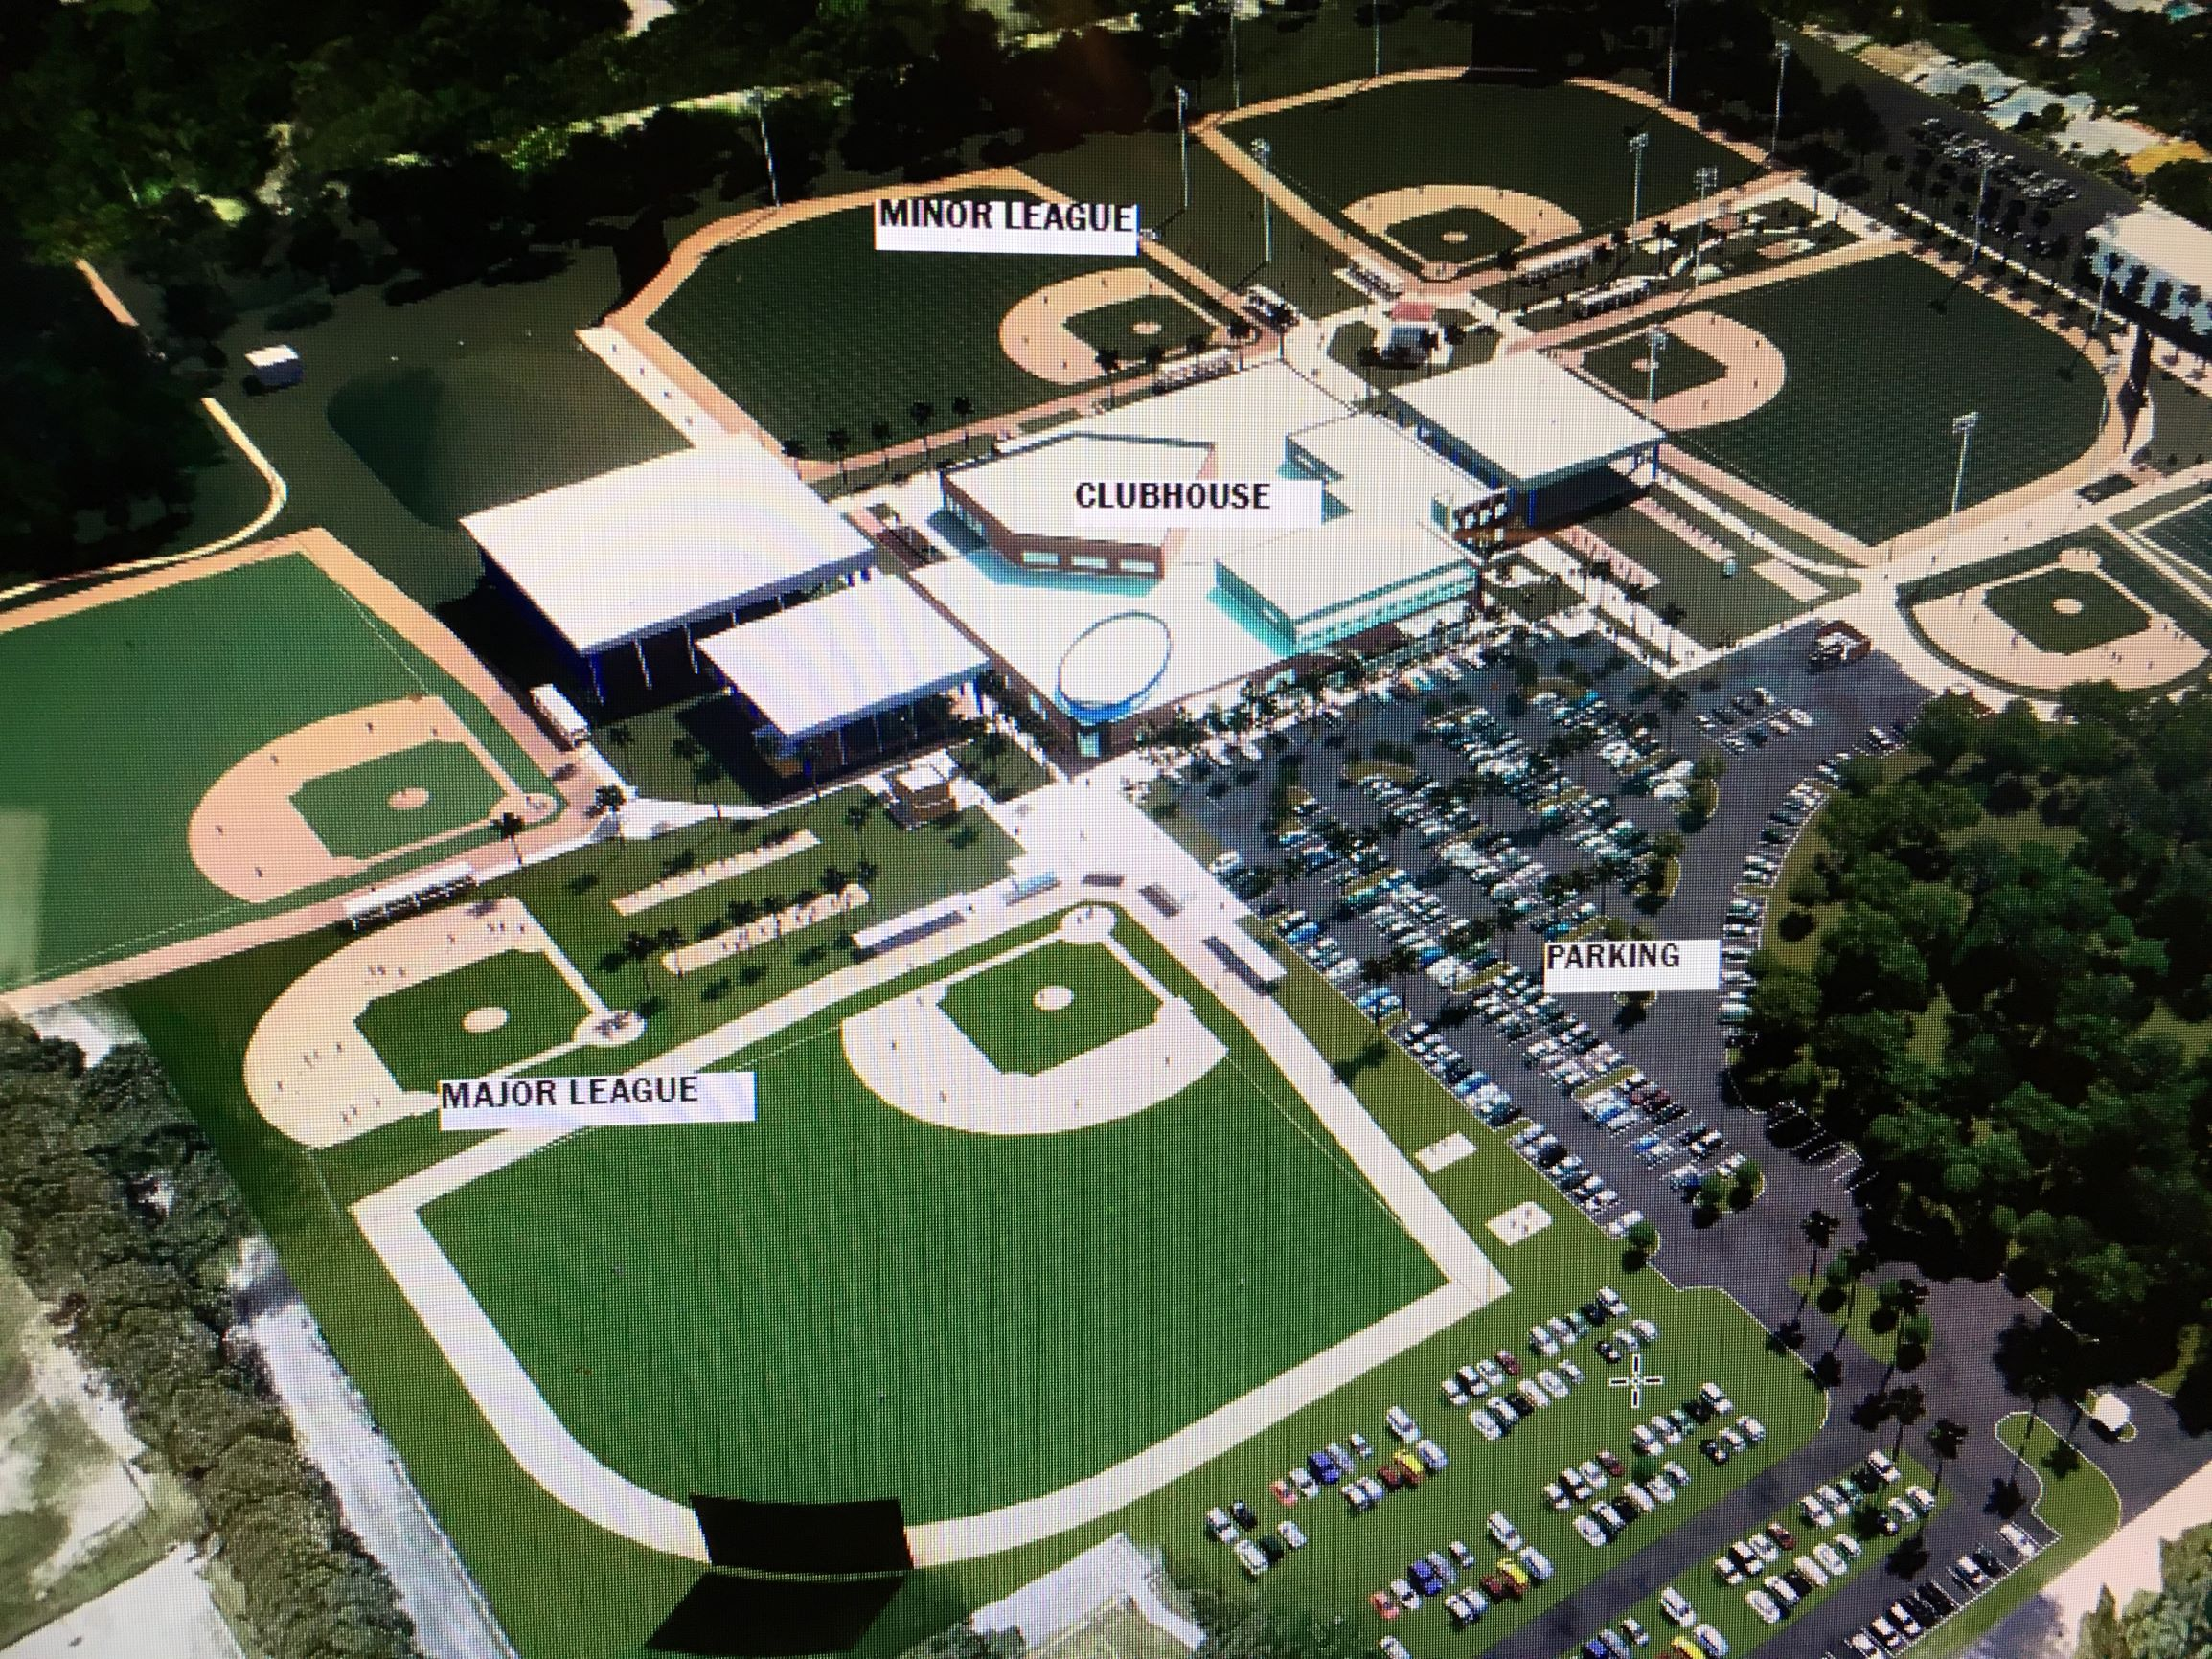 A look at the layout of the future Toronto Blue Jays' Player Development Centre which will replace the club's existing minor league complex in Dunedin, Fla.